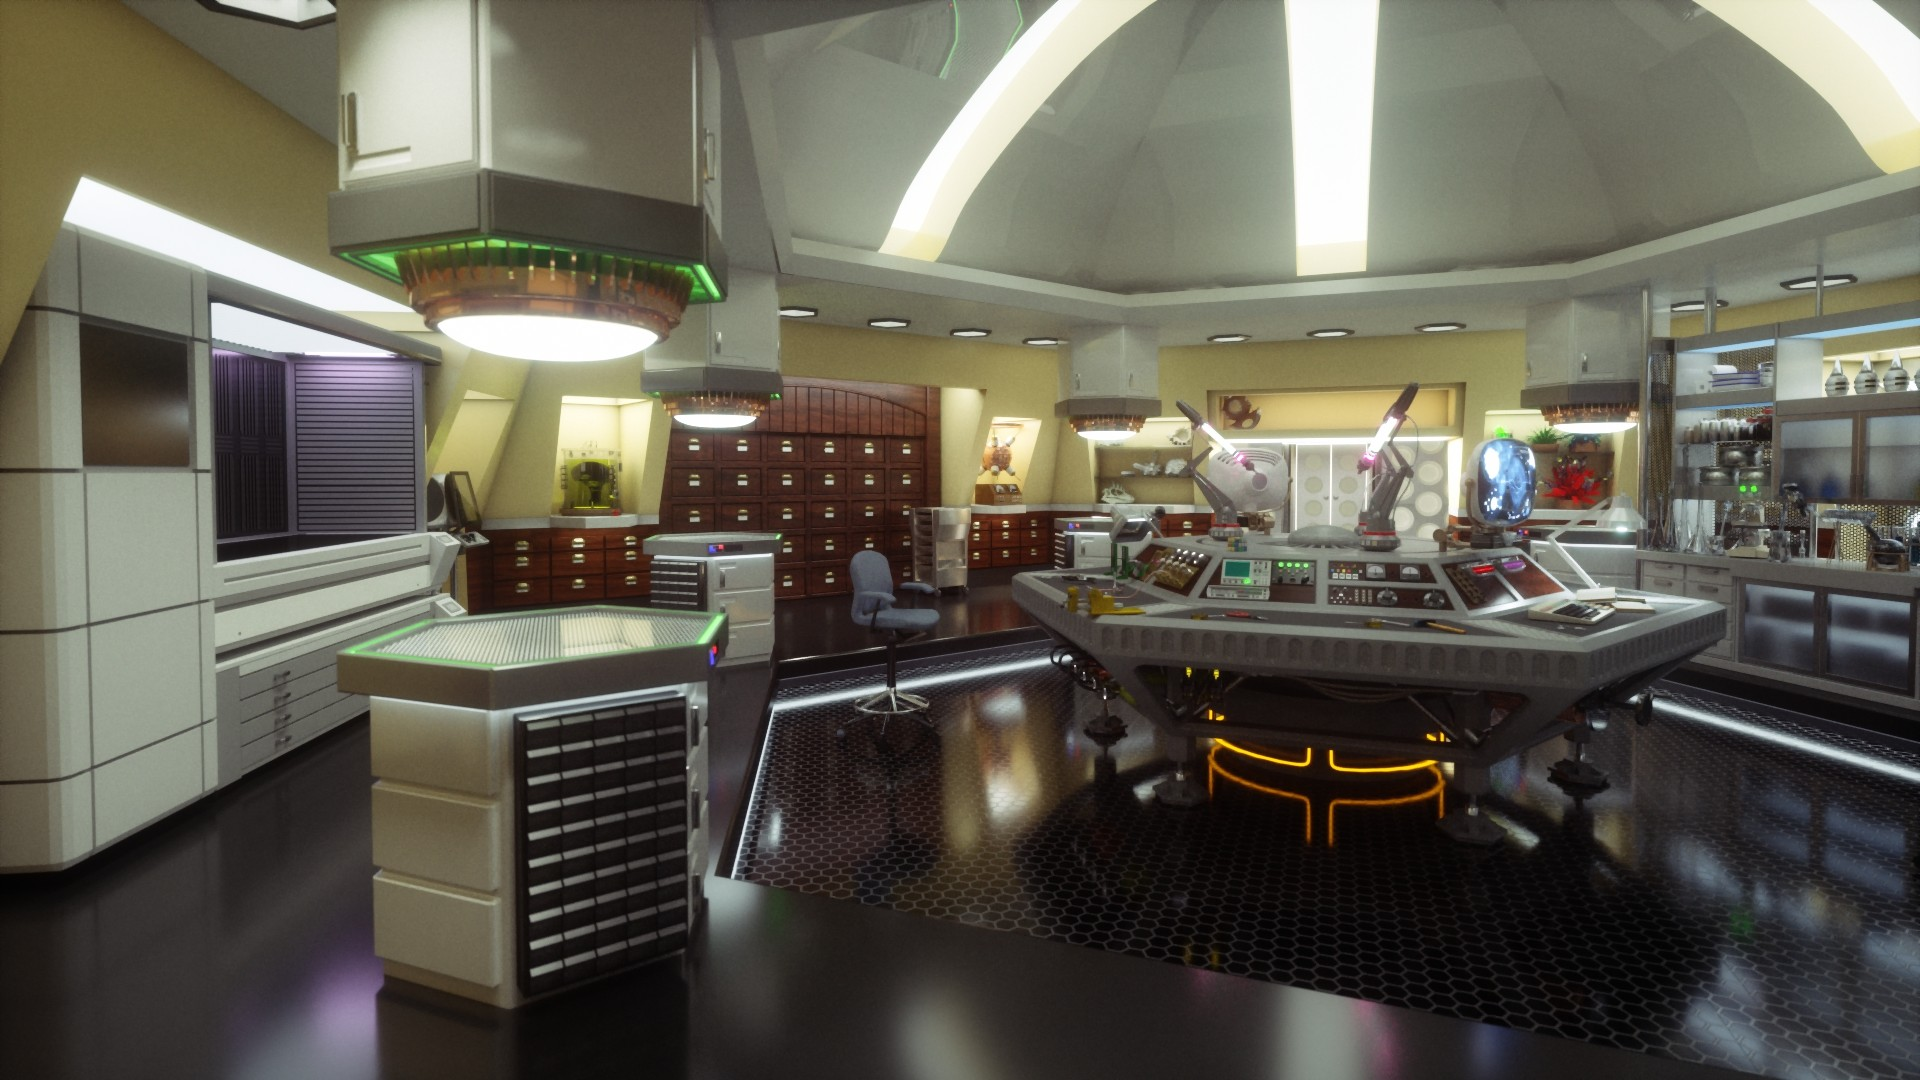 in 2002 I designed my own custom TARDIS interior concept. After 13 years I  have updated it.